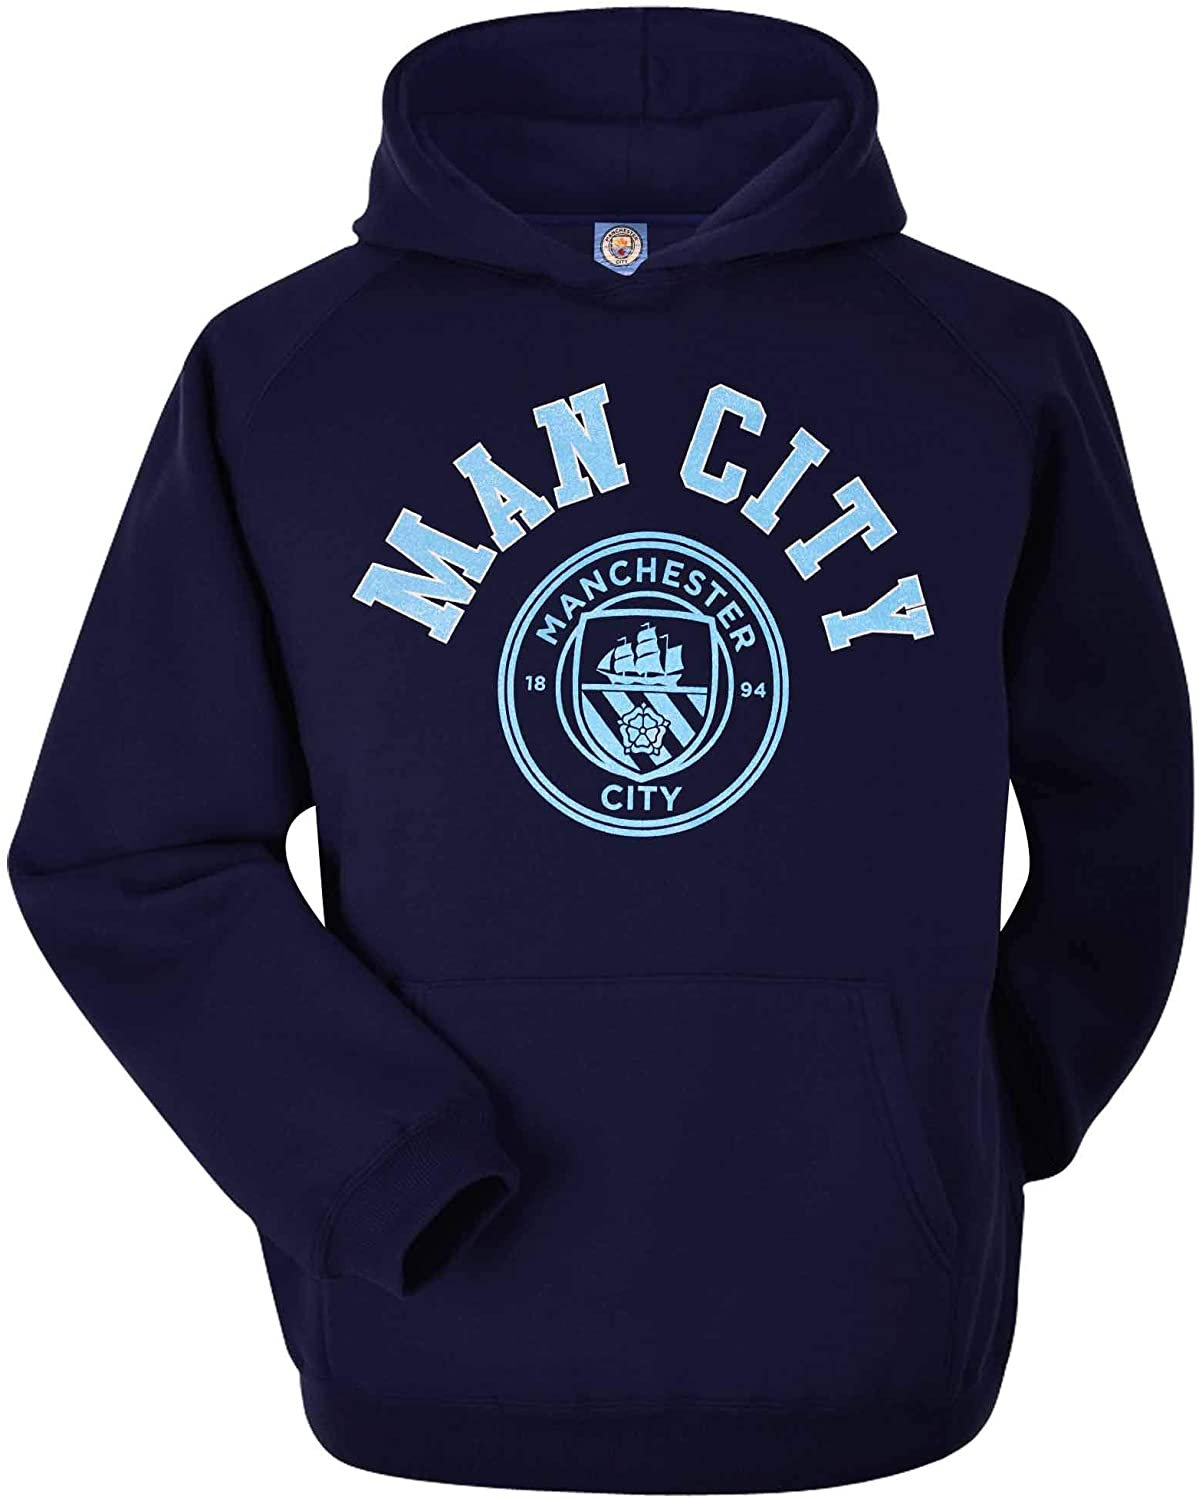 Official Manchester City Premier League Soccer Sweatshirt with Hood (Adult Sizes S to 2XL)